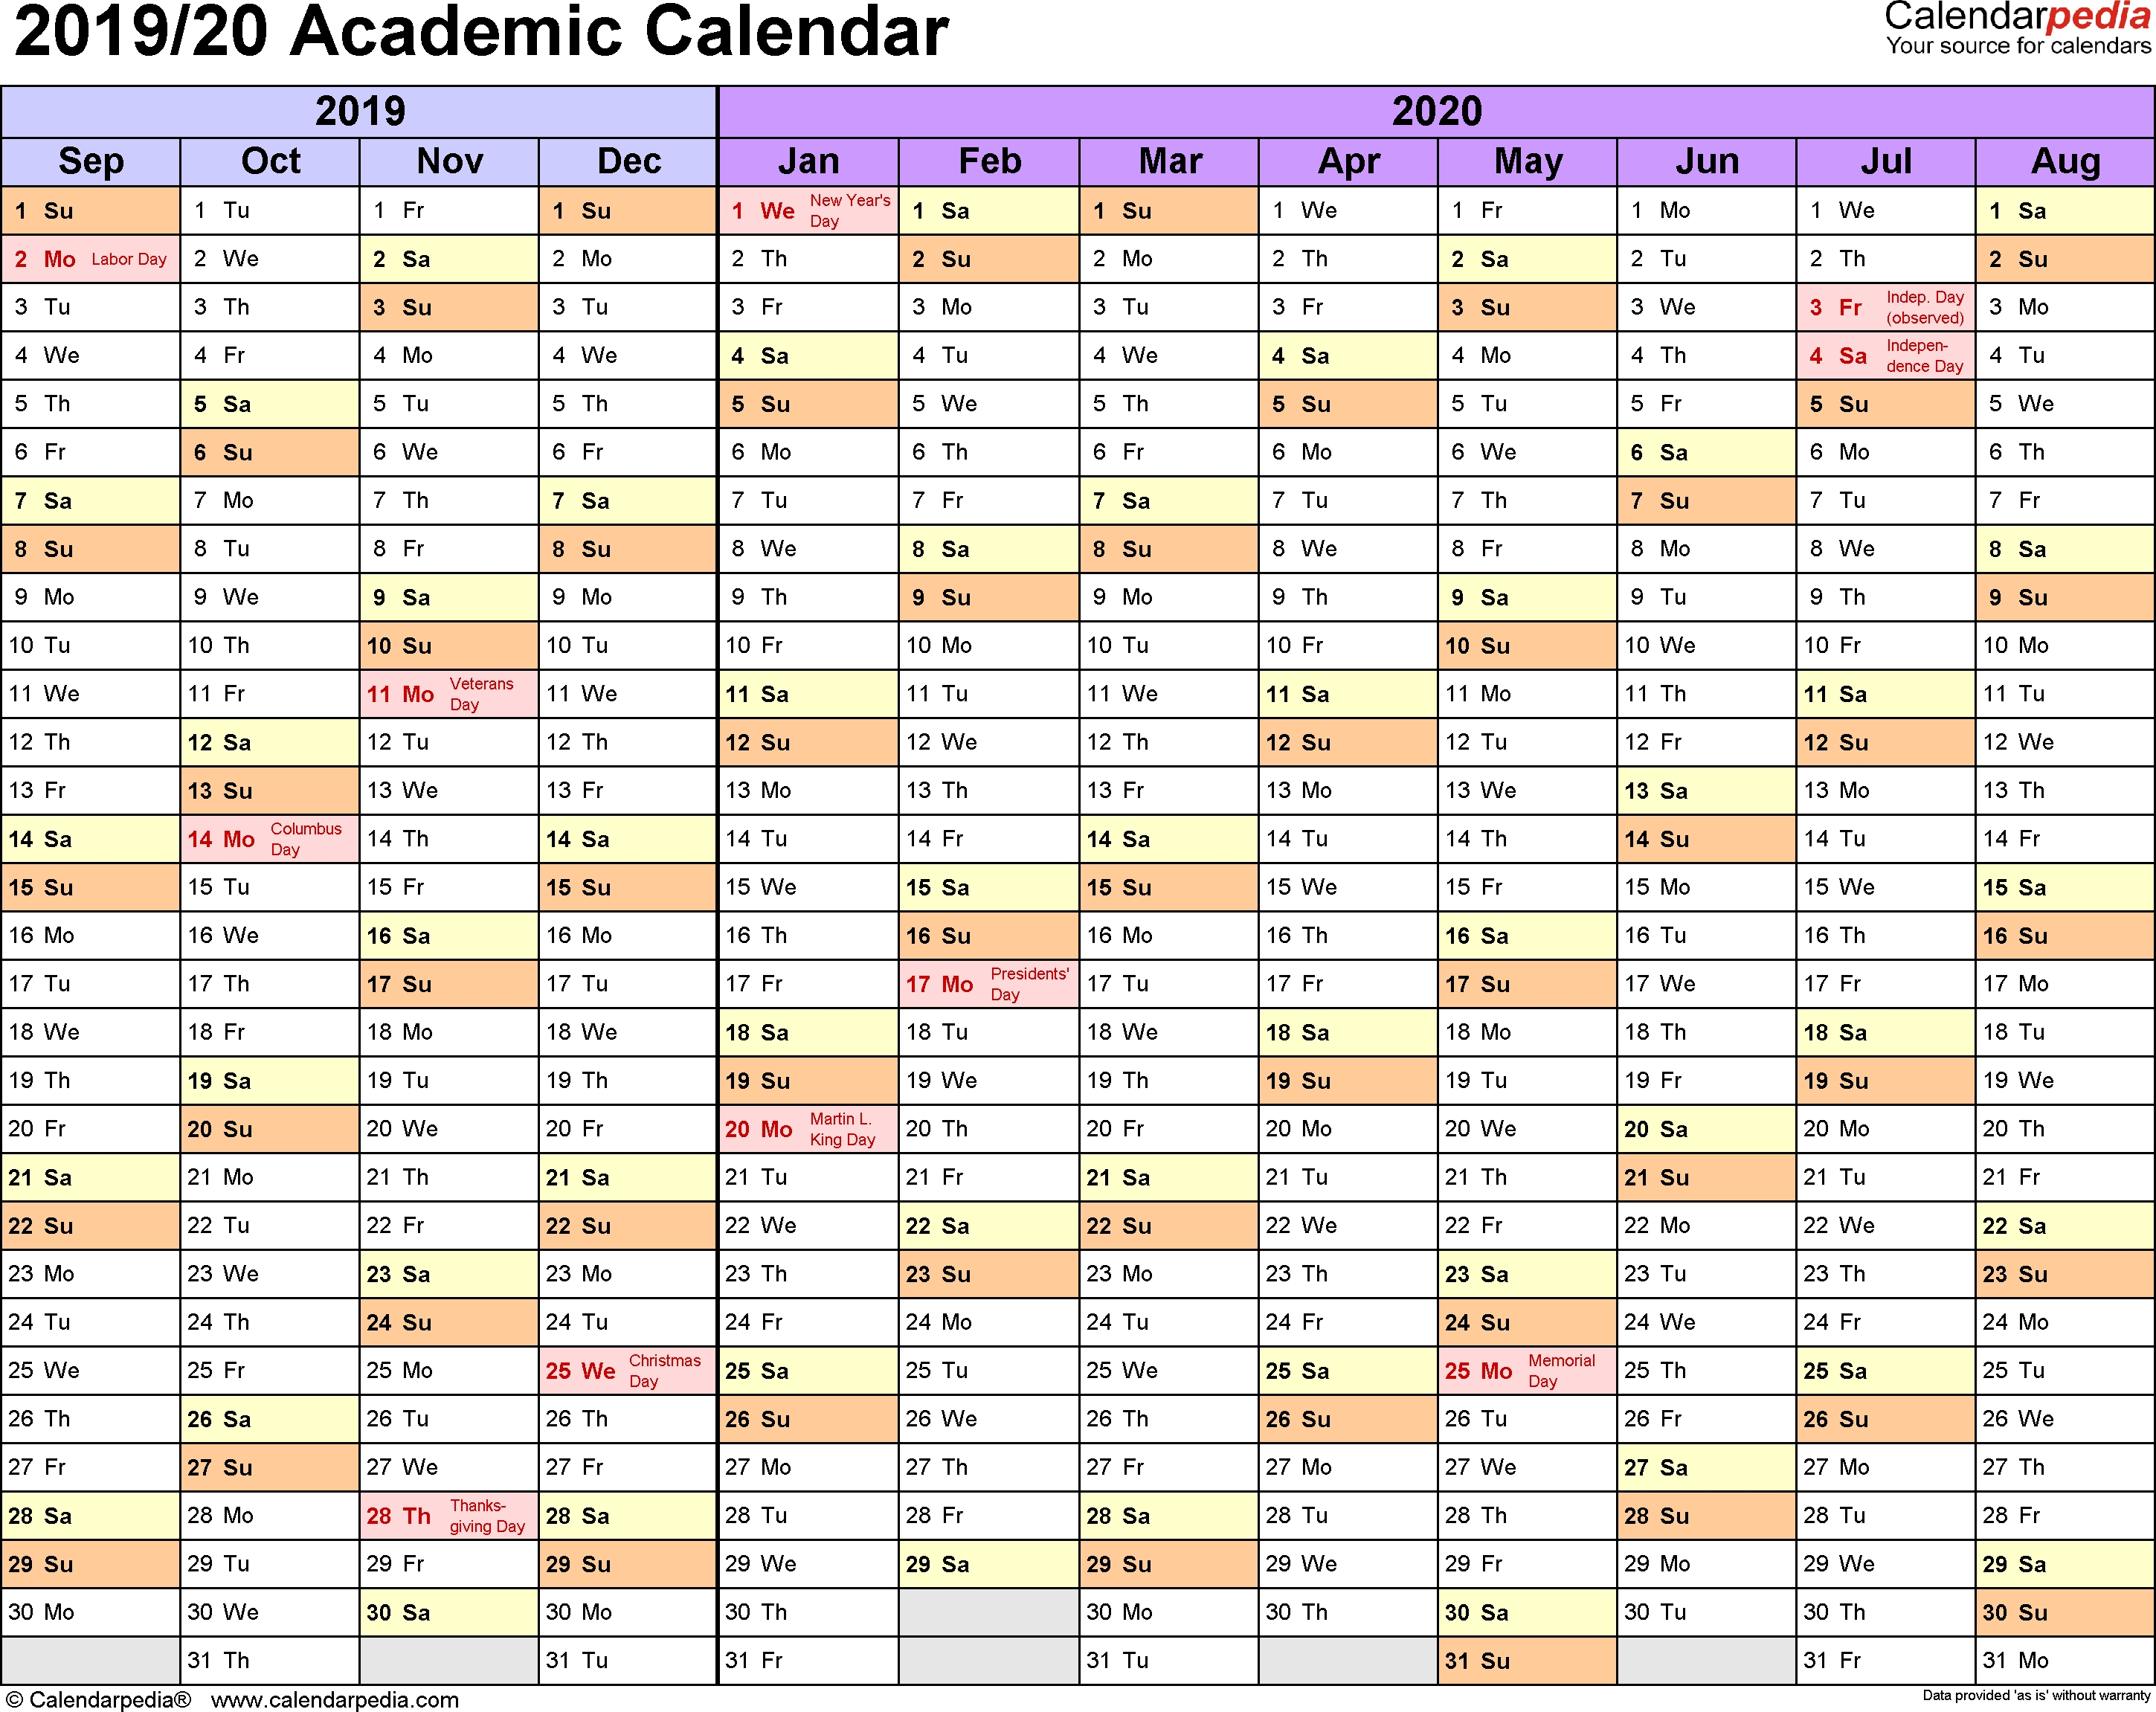 Academic Calendars 2019/2020 - Free Printable Excel Templates intended for 2019/2020 Calendar On One Page